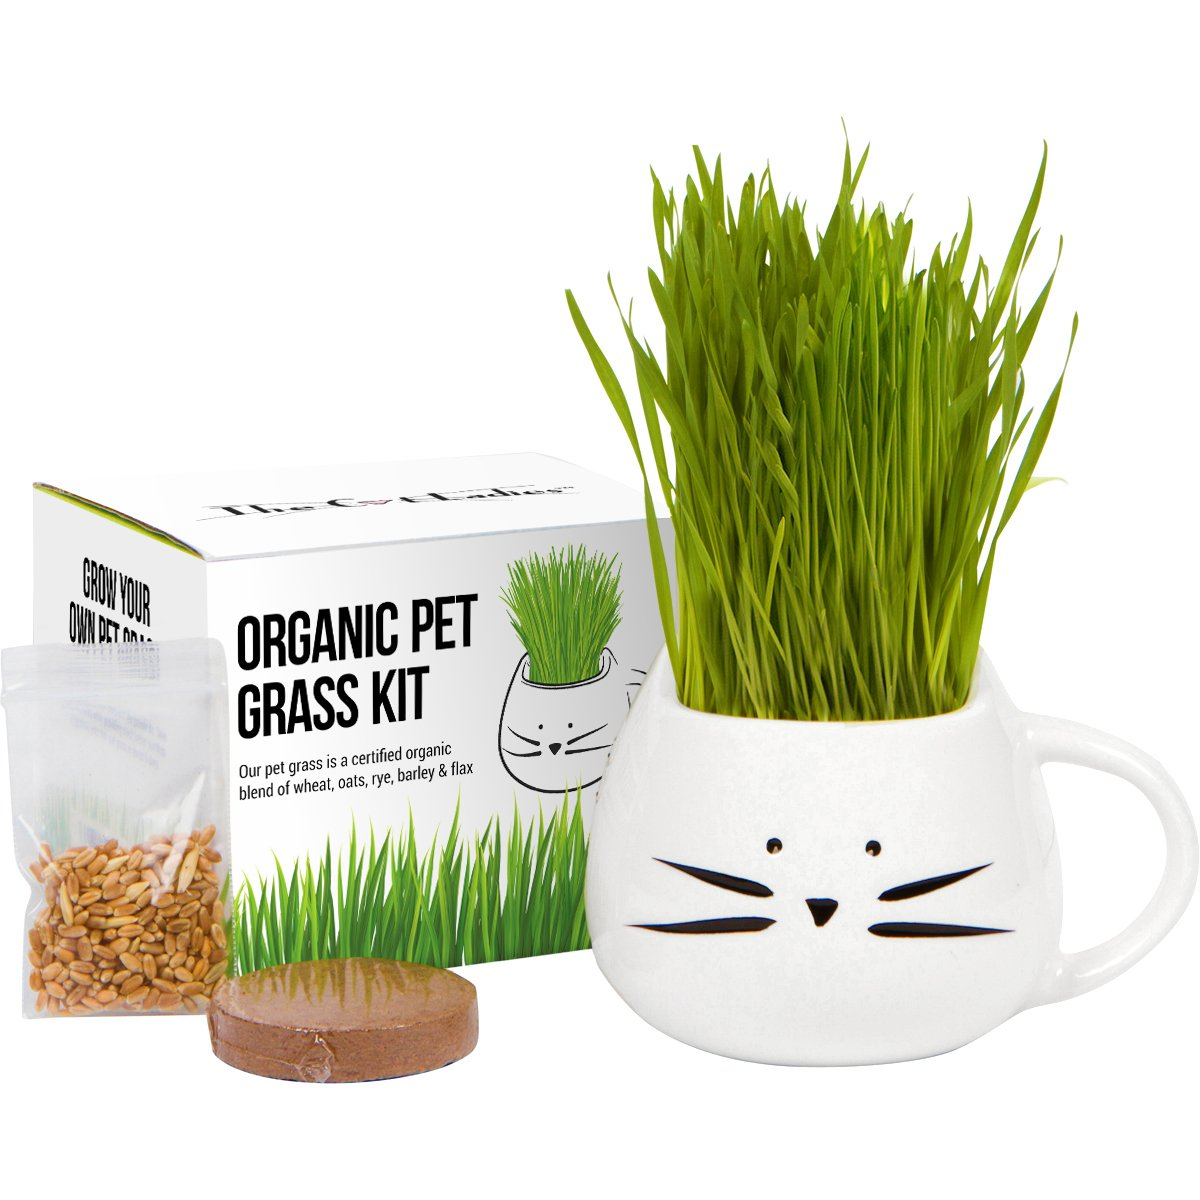 Organic cat grass growing kit with organic seed mix, organic soil and cat planter. Great gift for pet lovers & makes a great gift for pet. Natural hairball control and remedy. Manufactured in the USA.